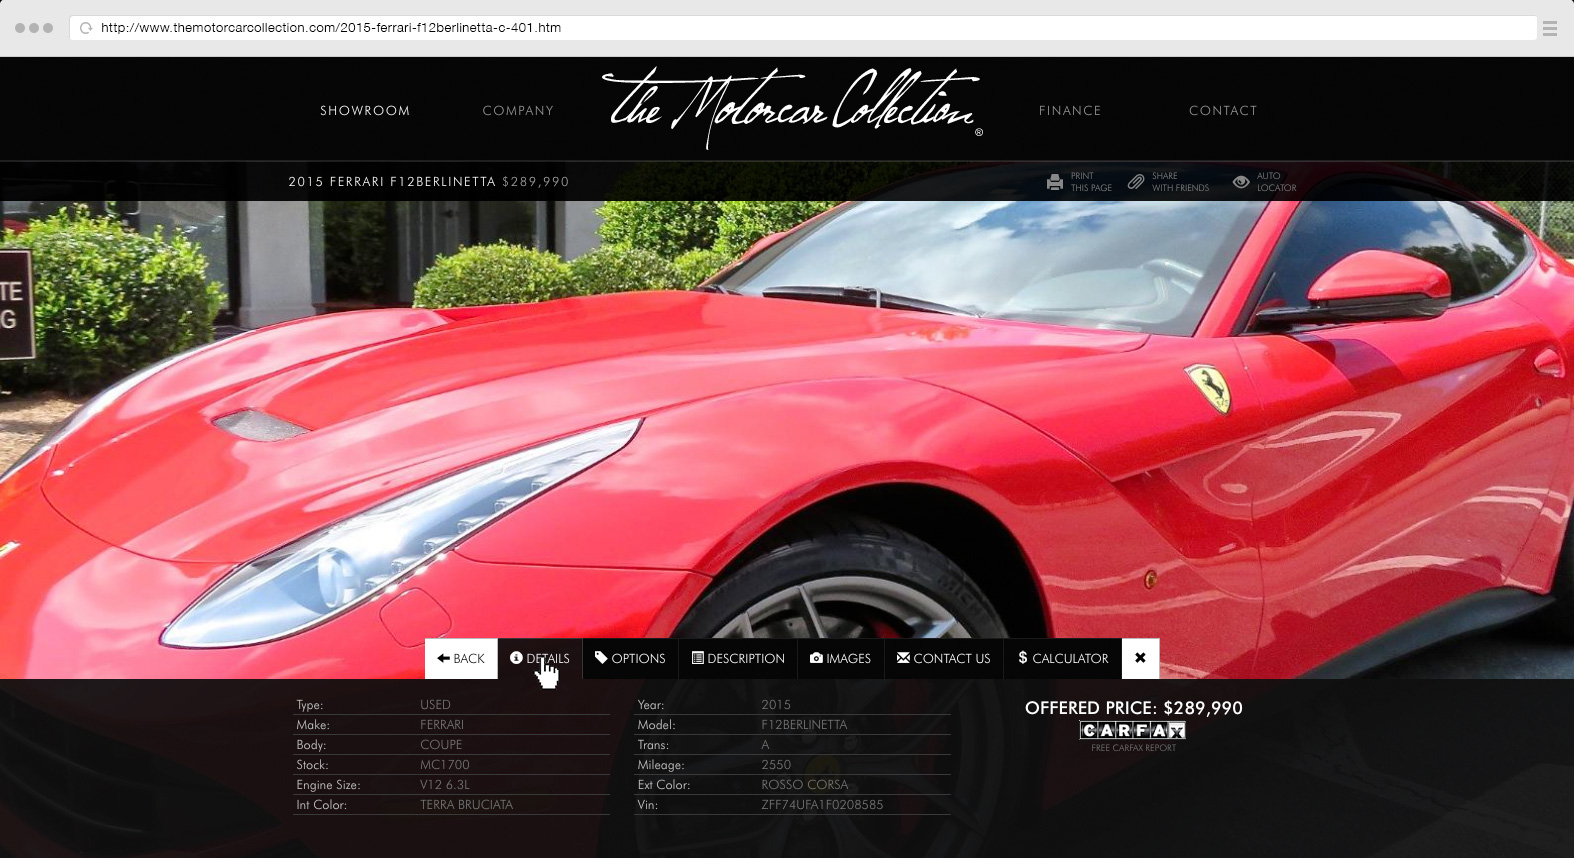 Vehicle details page